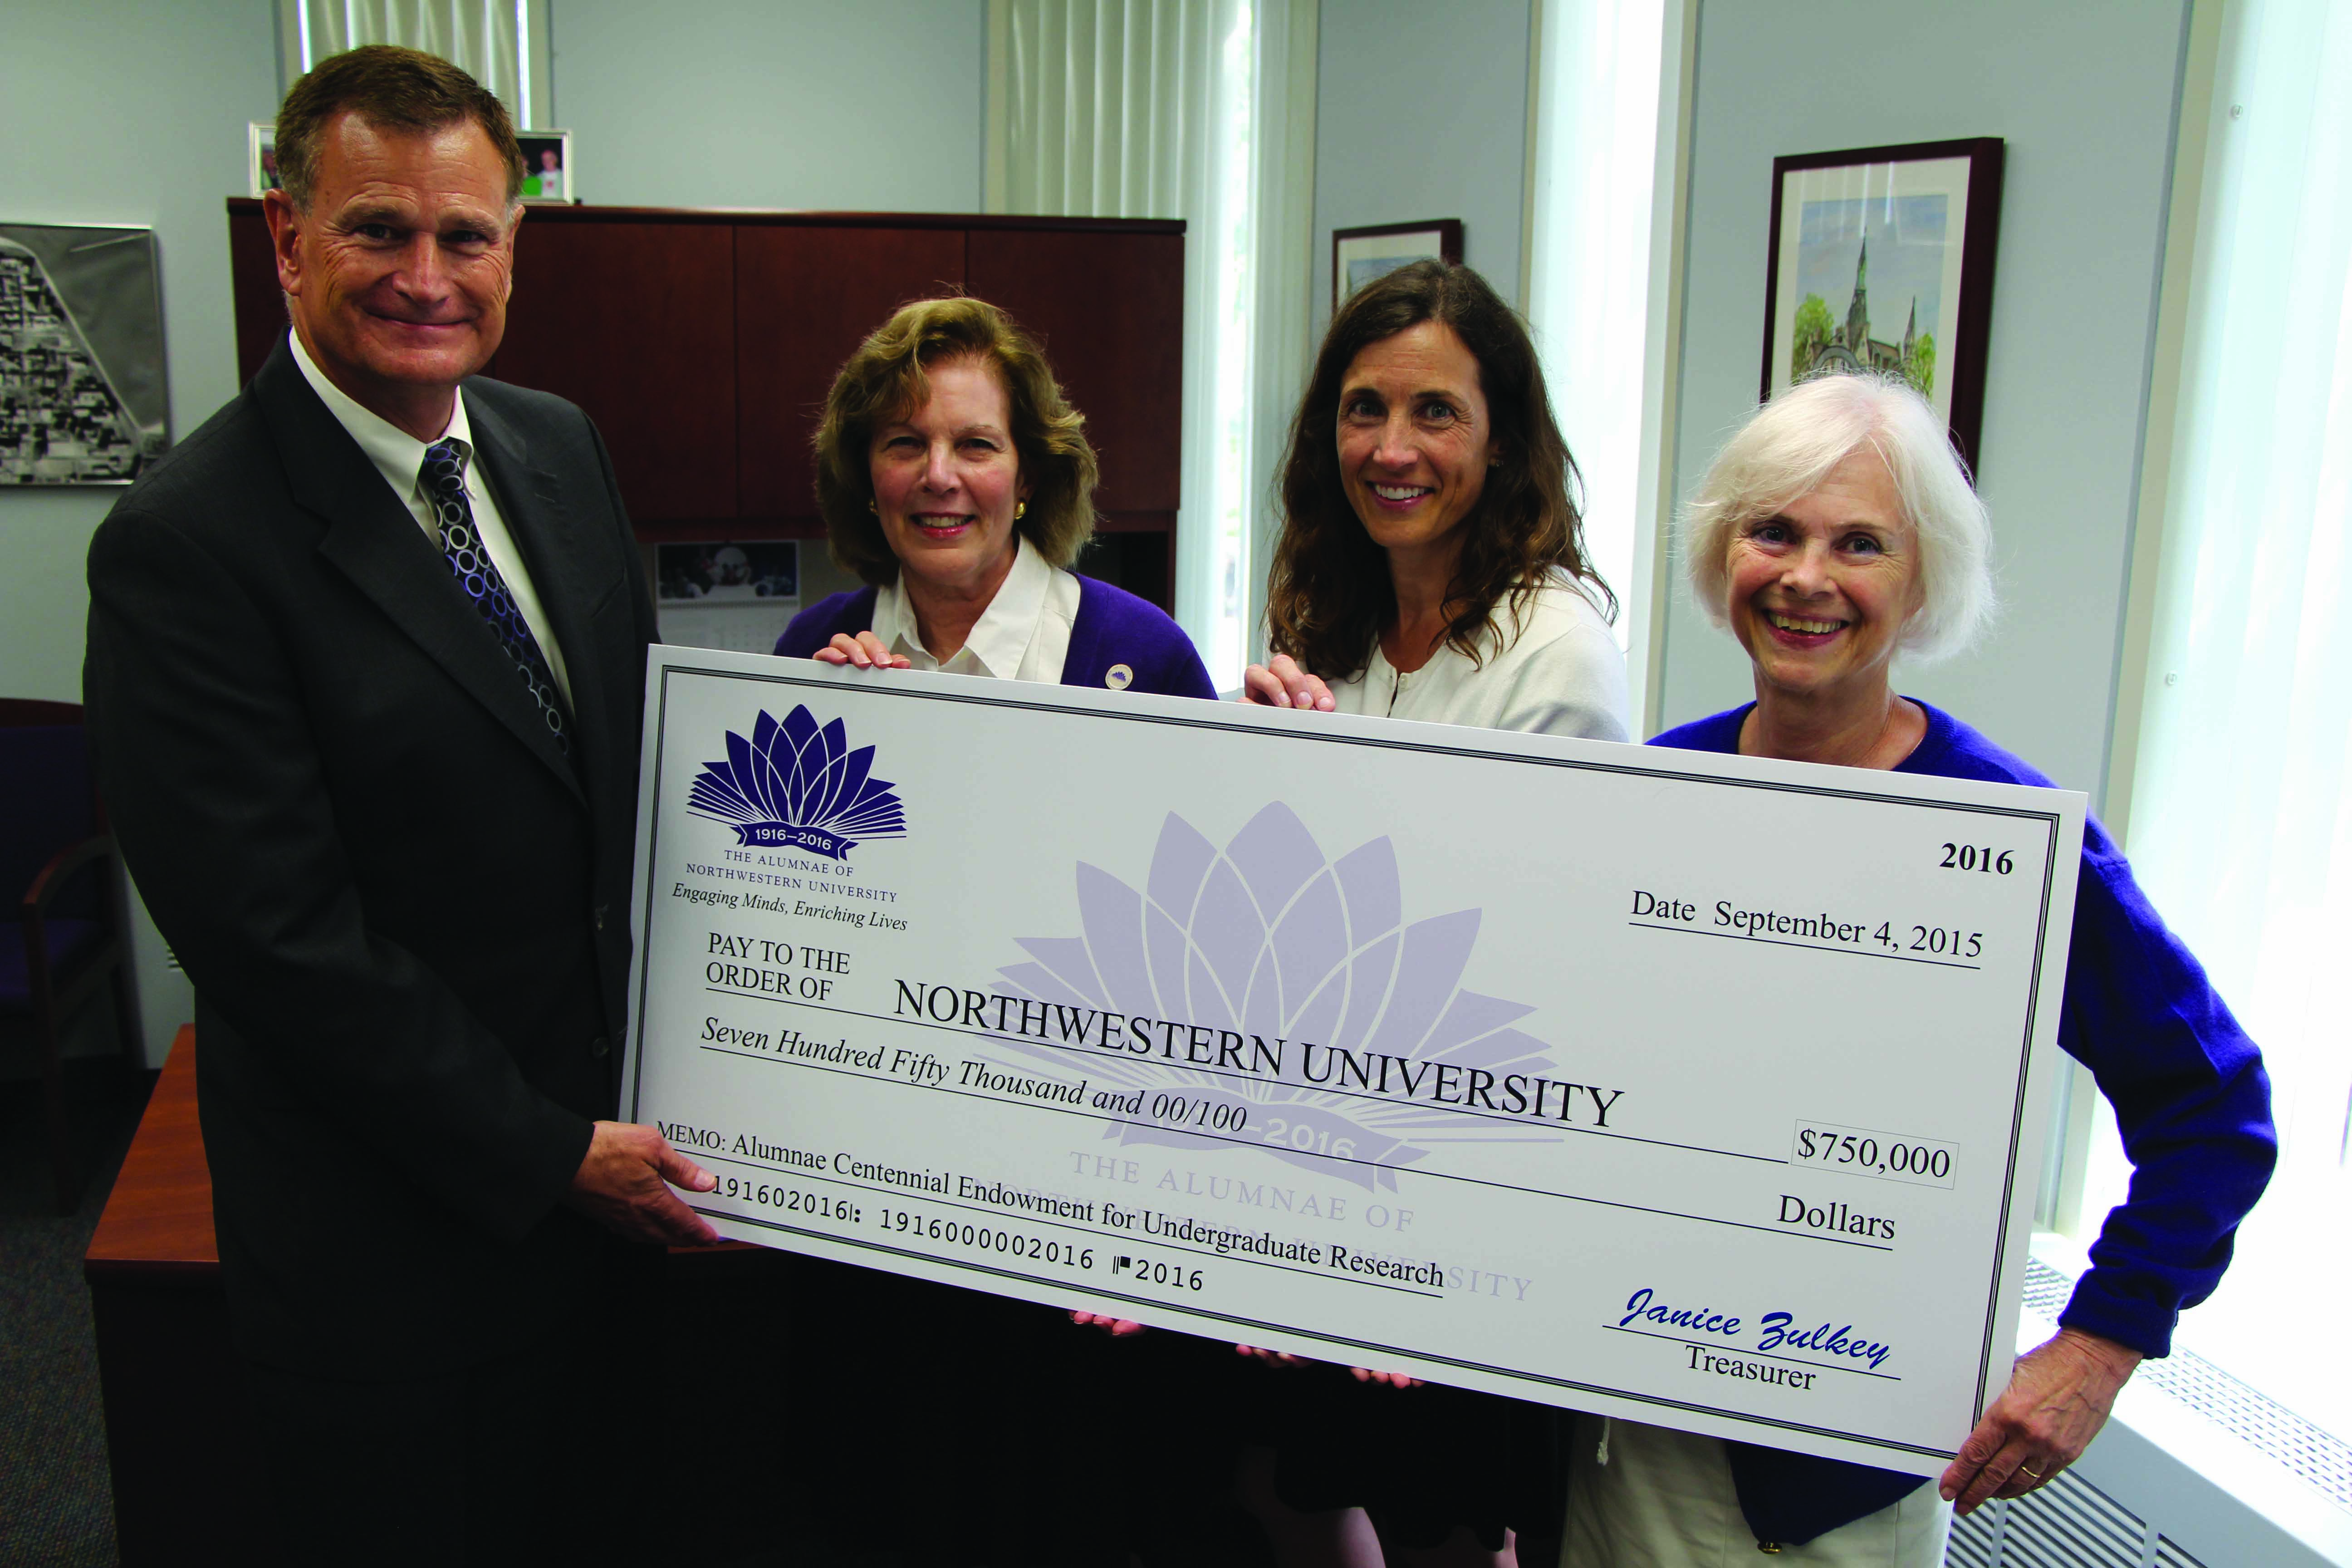 Ron Braeutigam, Pam James, Anne Martino and Janet Bilandic present a $750,000 check at the Northwestern Alumni Association Leadership Symposium. The Alumnae created a $1 million endowment for undergraduate research at NU.